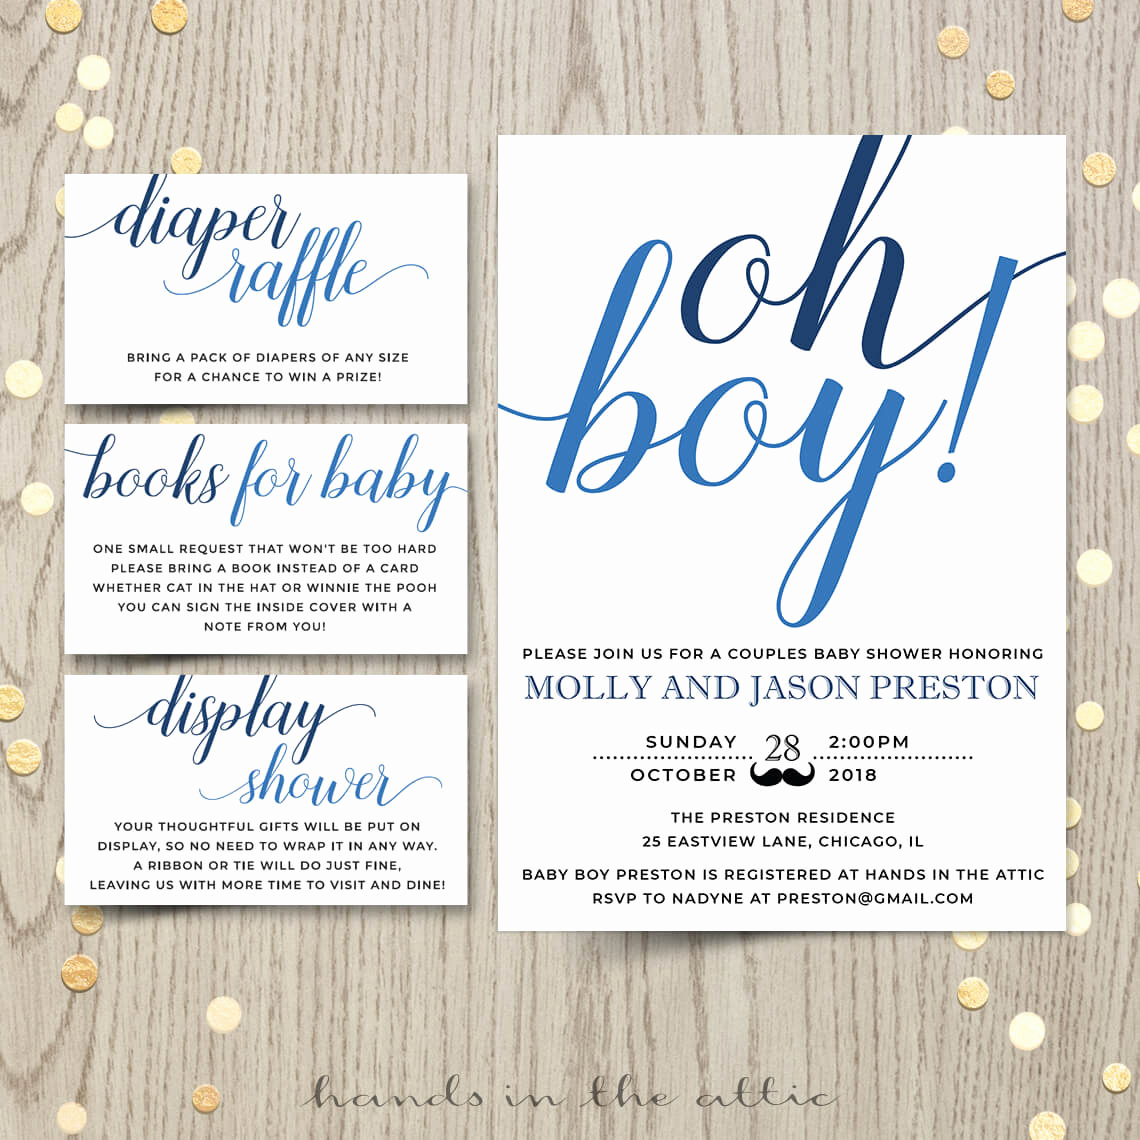 Baby Boy Shower Invitation Wording Inspirational Oh Boy Baby Shower Invitation